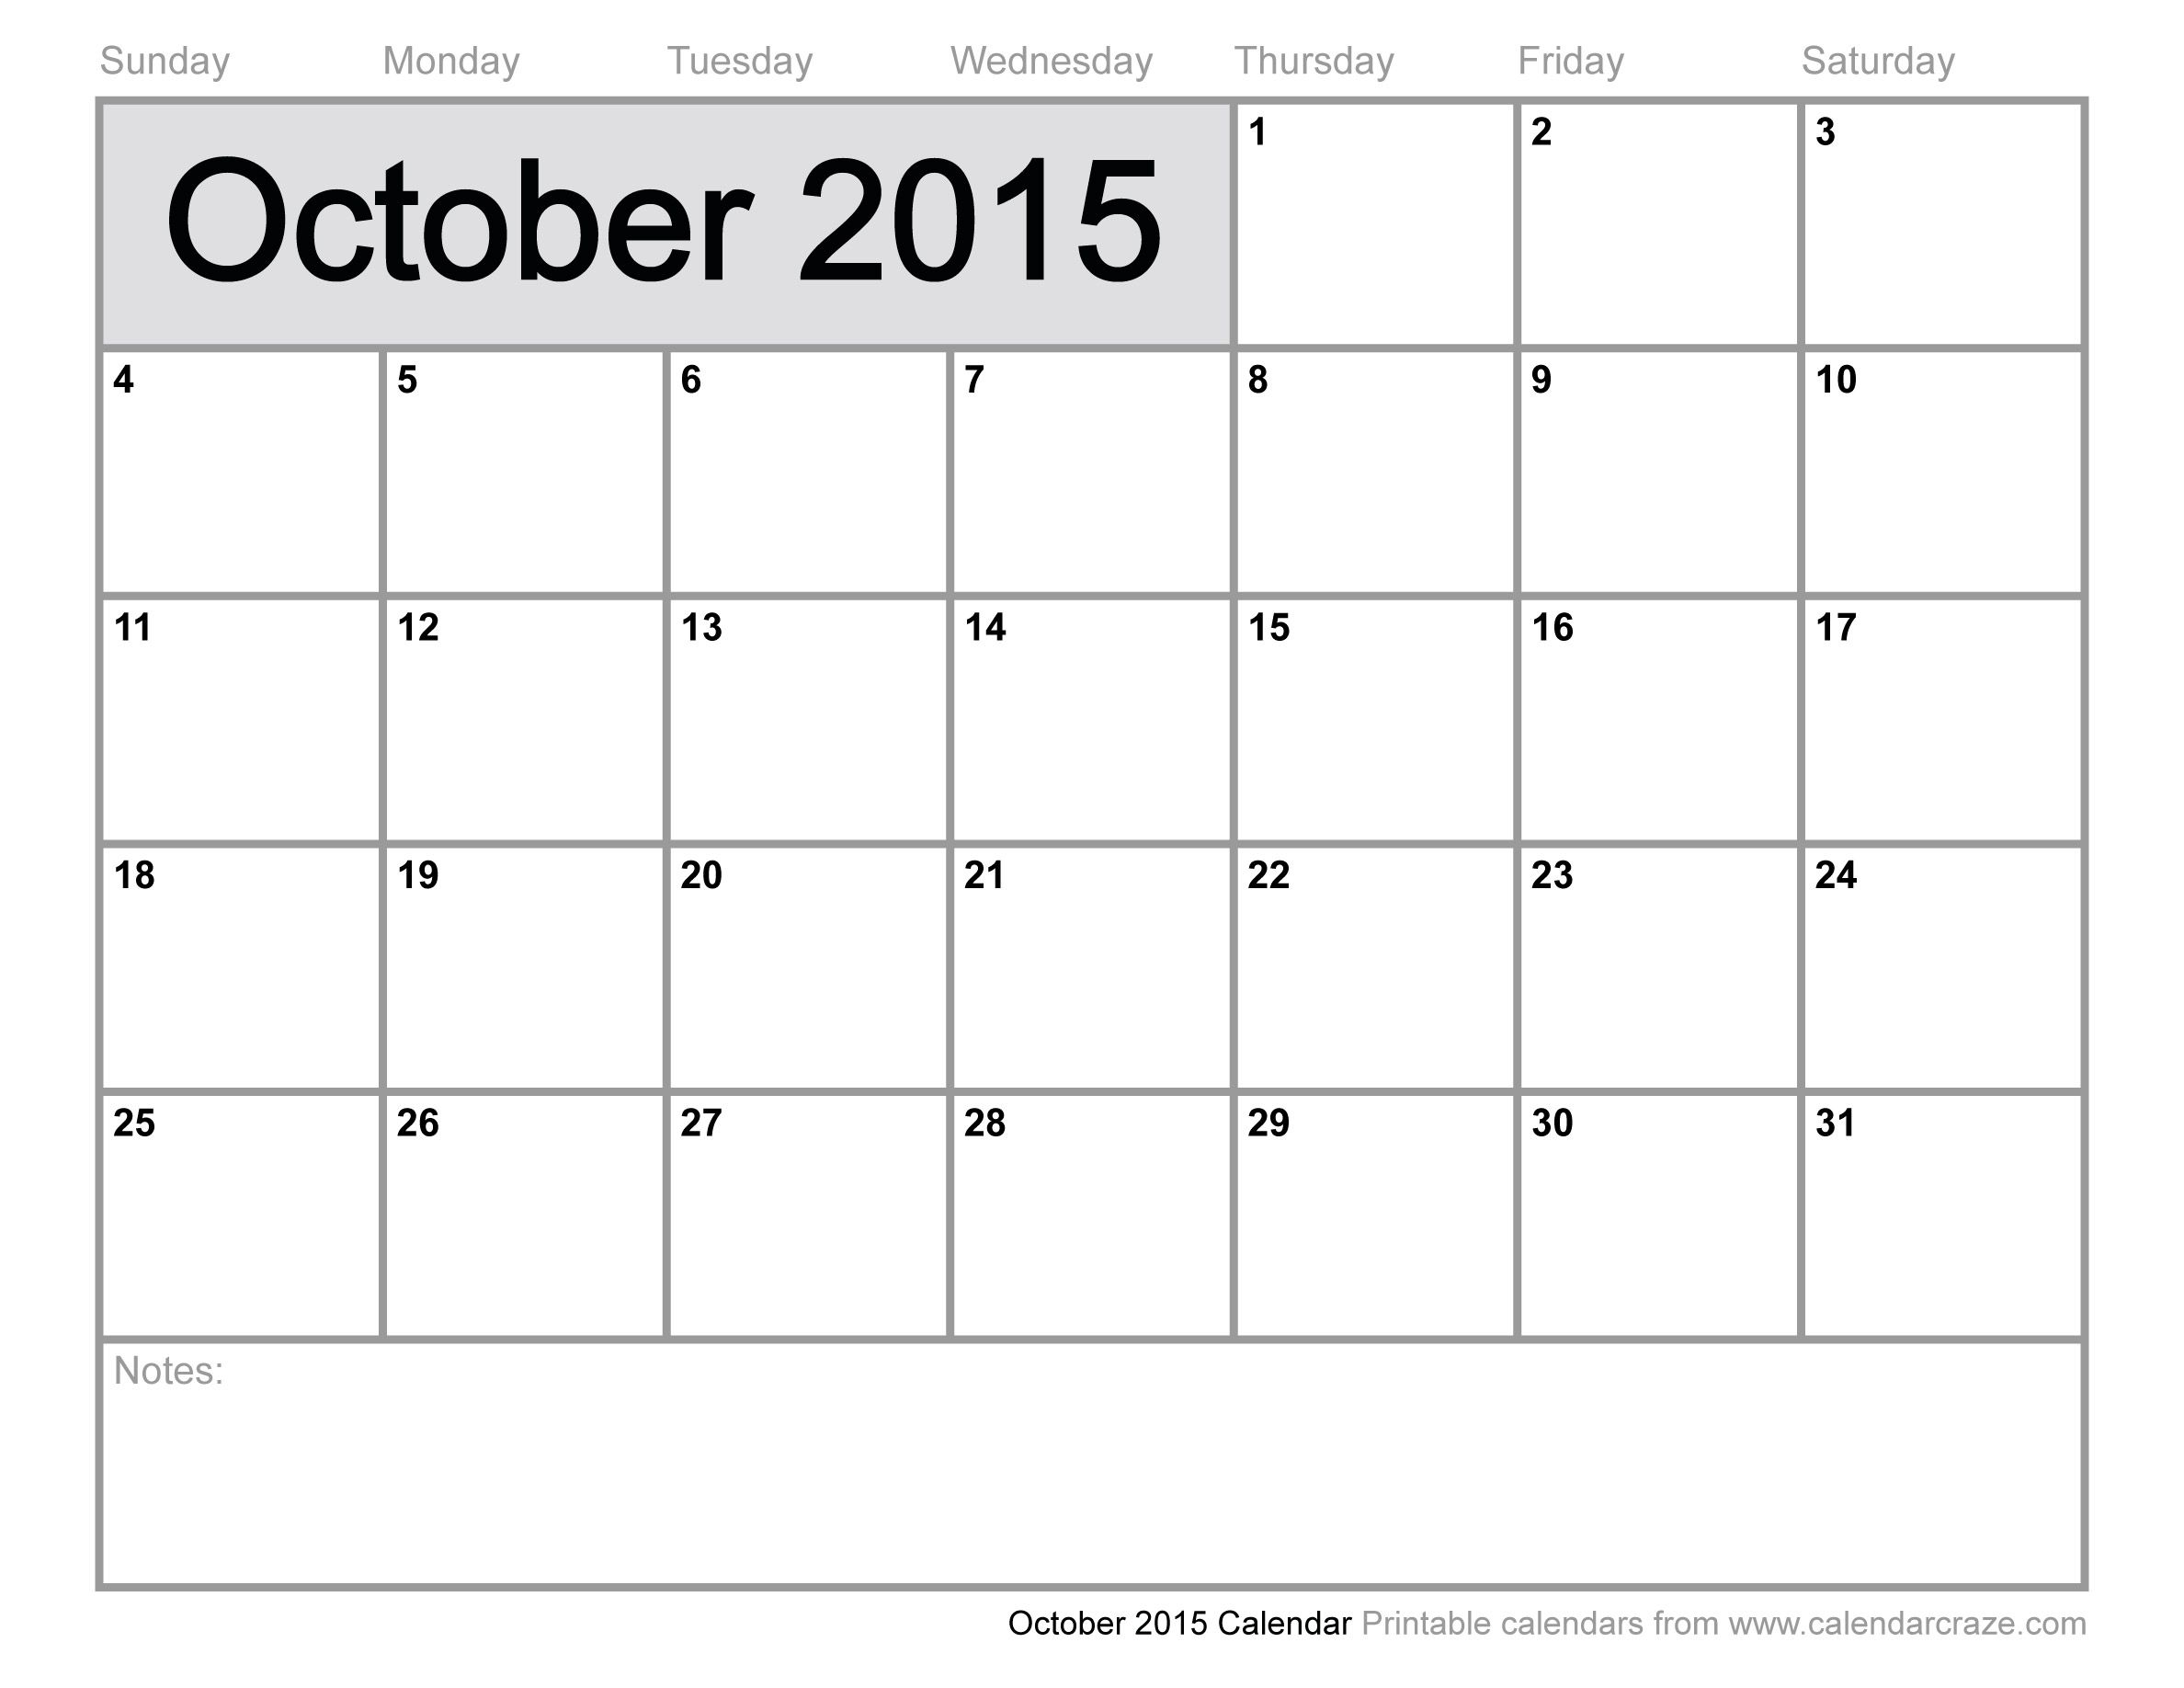 Blank Calendar Google : Calendar october printable google search projects to try